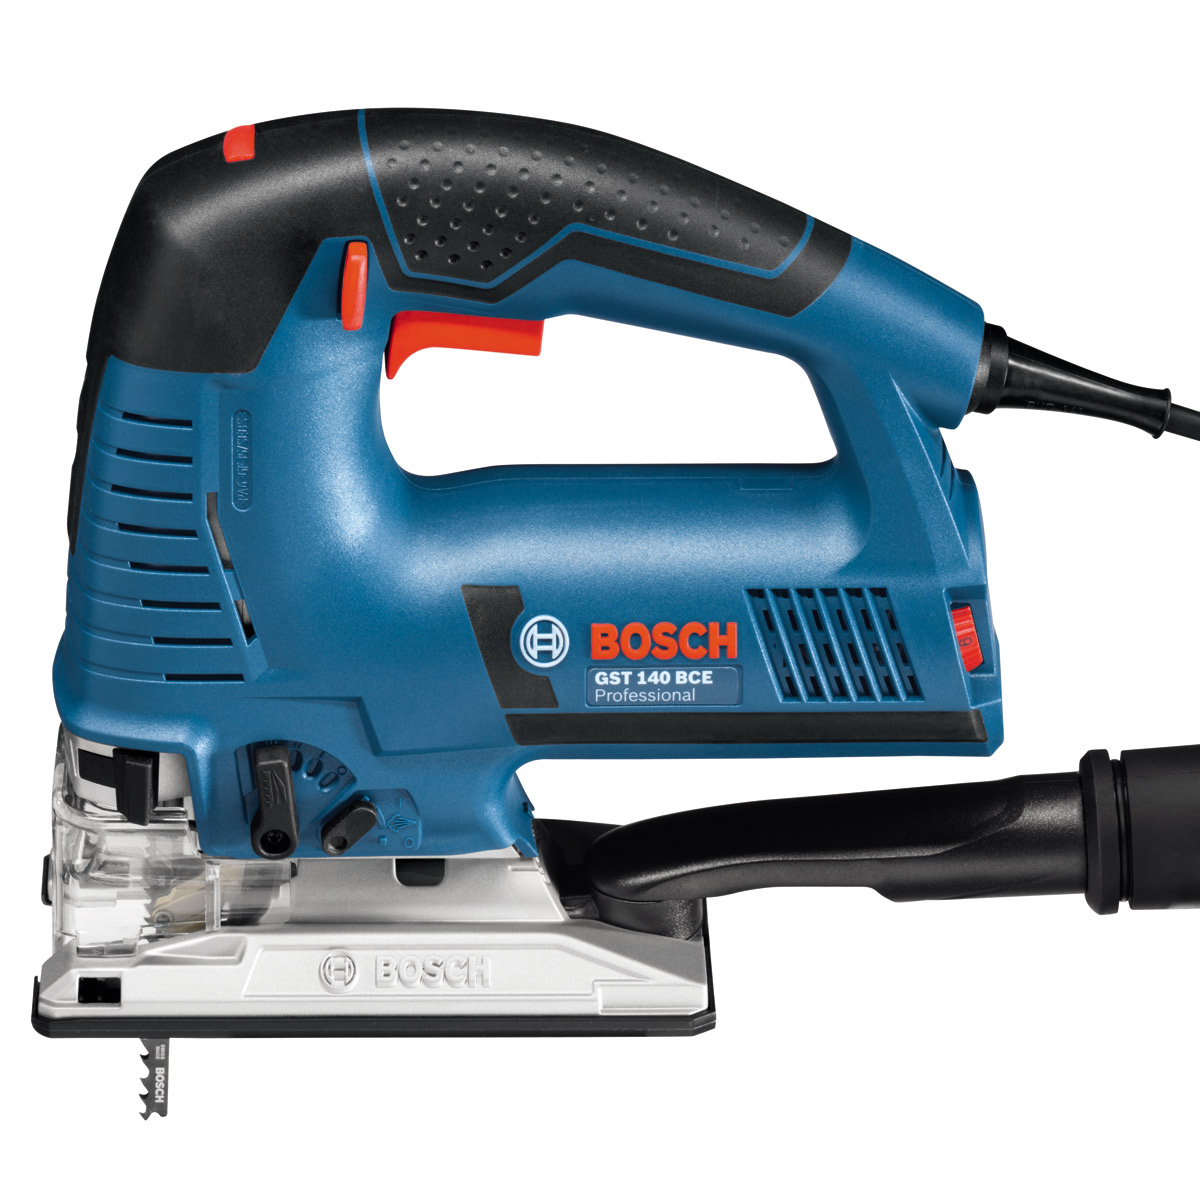 BOSCH GST140BCE 720W TOP HANDLE JIGSAW IN L-BOXX 110V